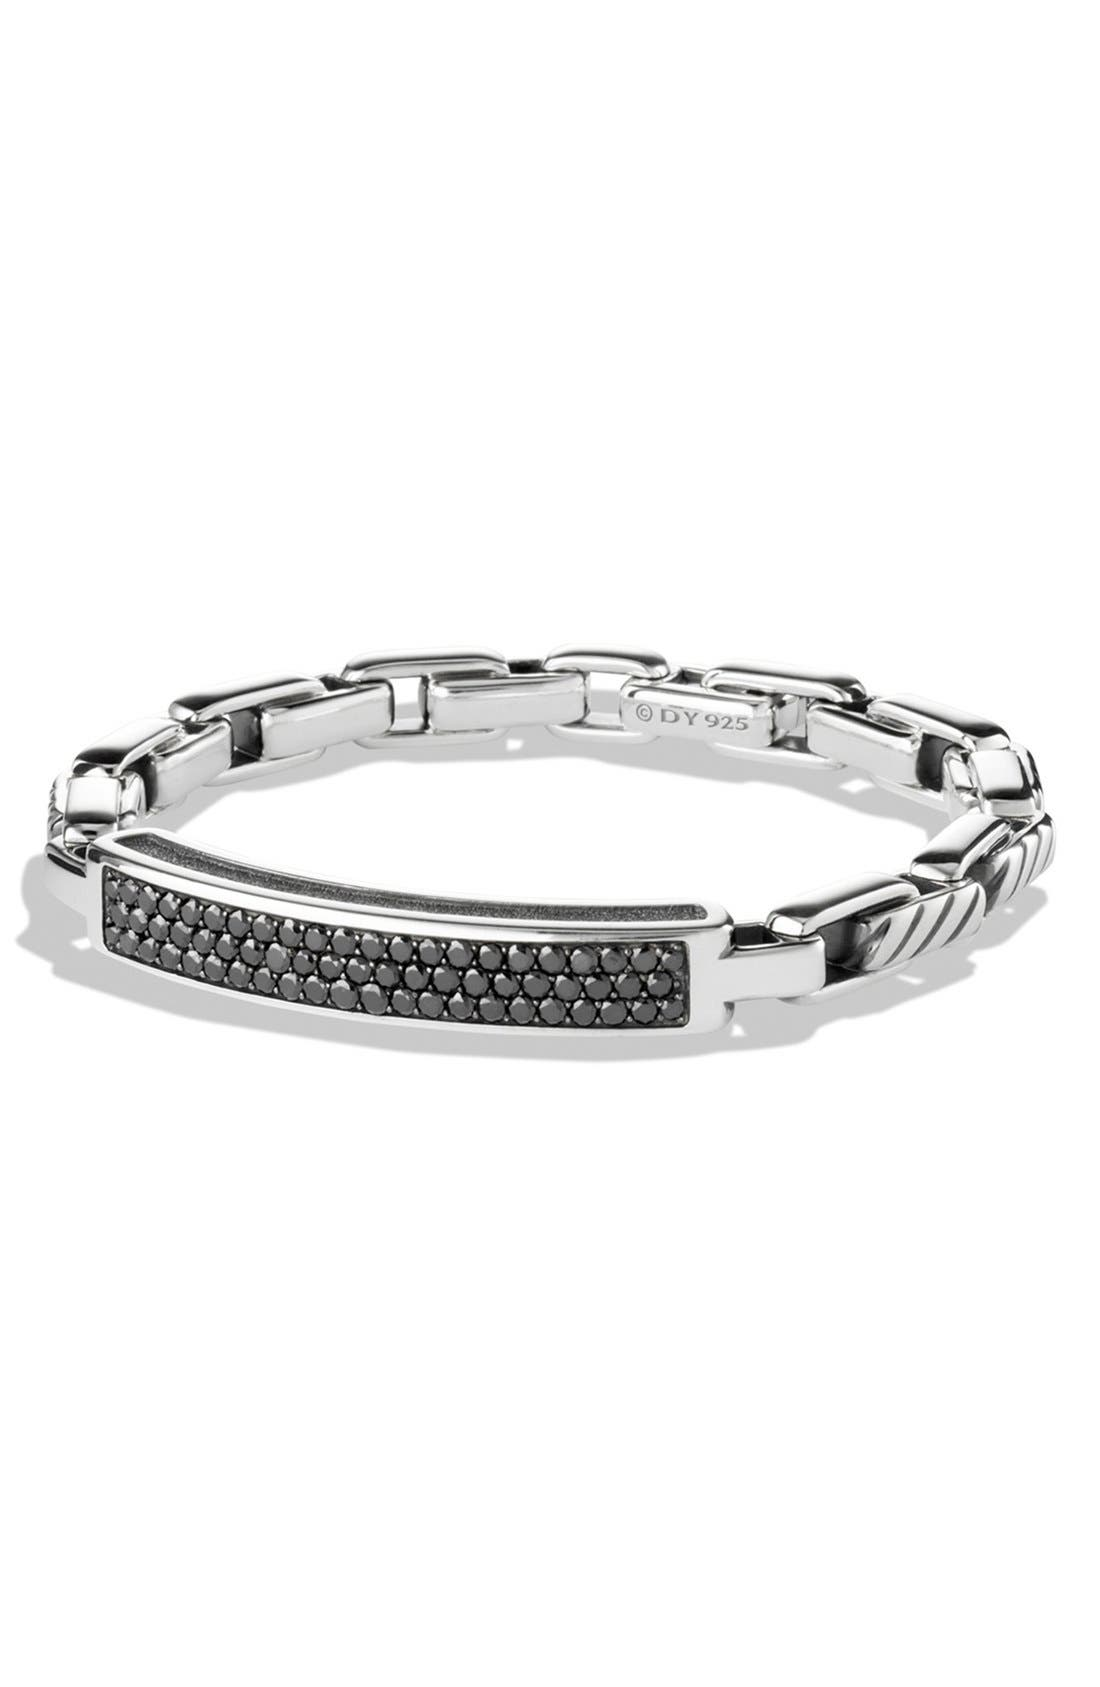 Alternate Image 1 Selected - David Yurman 'Modern Cable' ID Bracelet with Black Diamonds